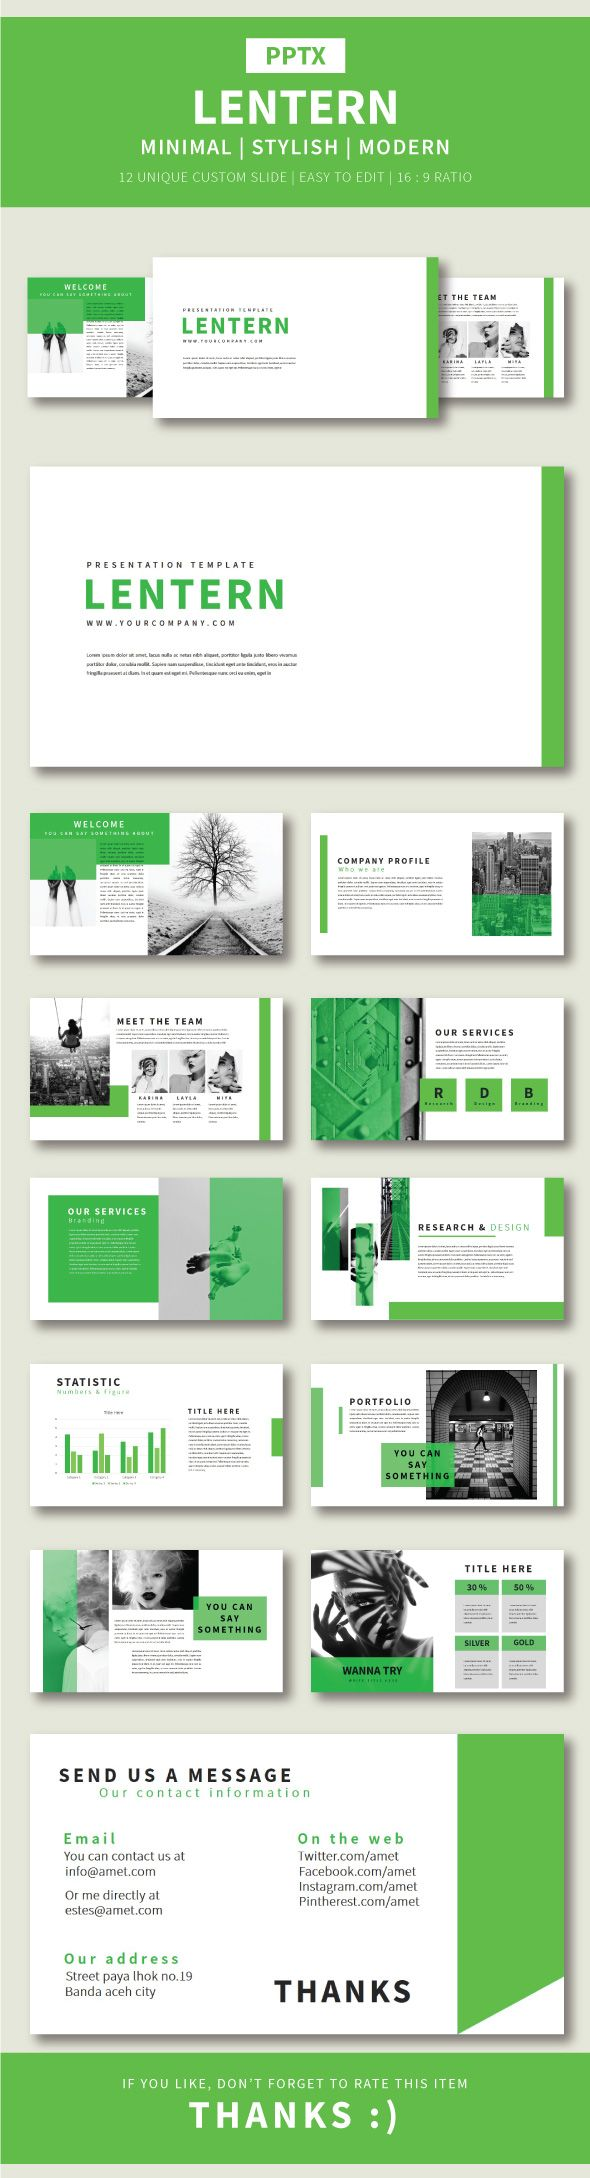 The Best Graphic Design Presentation Designs Images On - Fresh facebook template powerpoint ideas